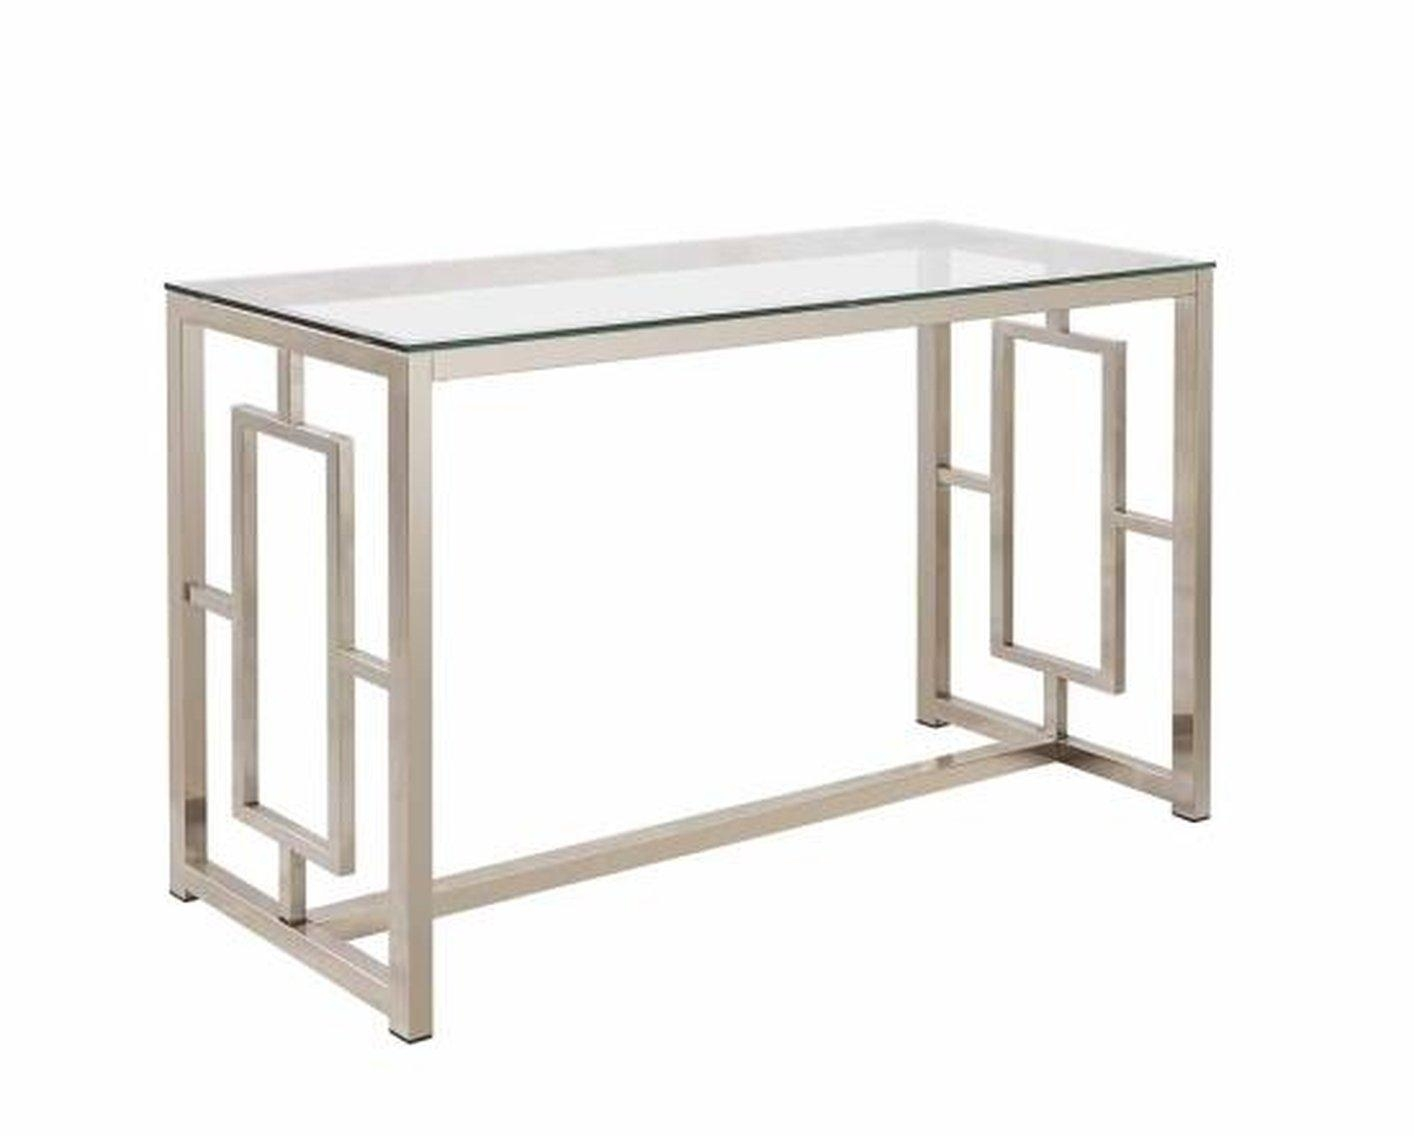 Silver Glass Sofa Table – Steal A Sofa Furniture Outlet Los Angeles Ca For Metal Glass Sofa Tables (View 22 of 22)